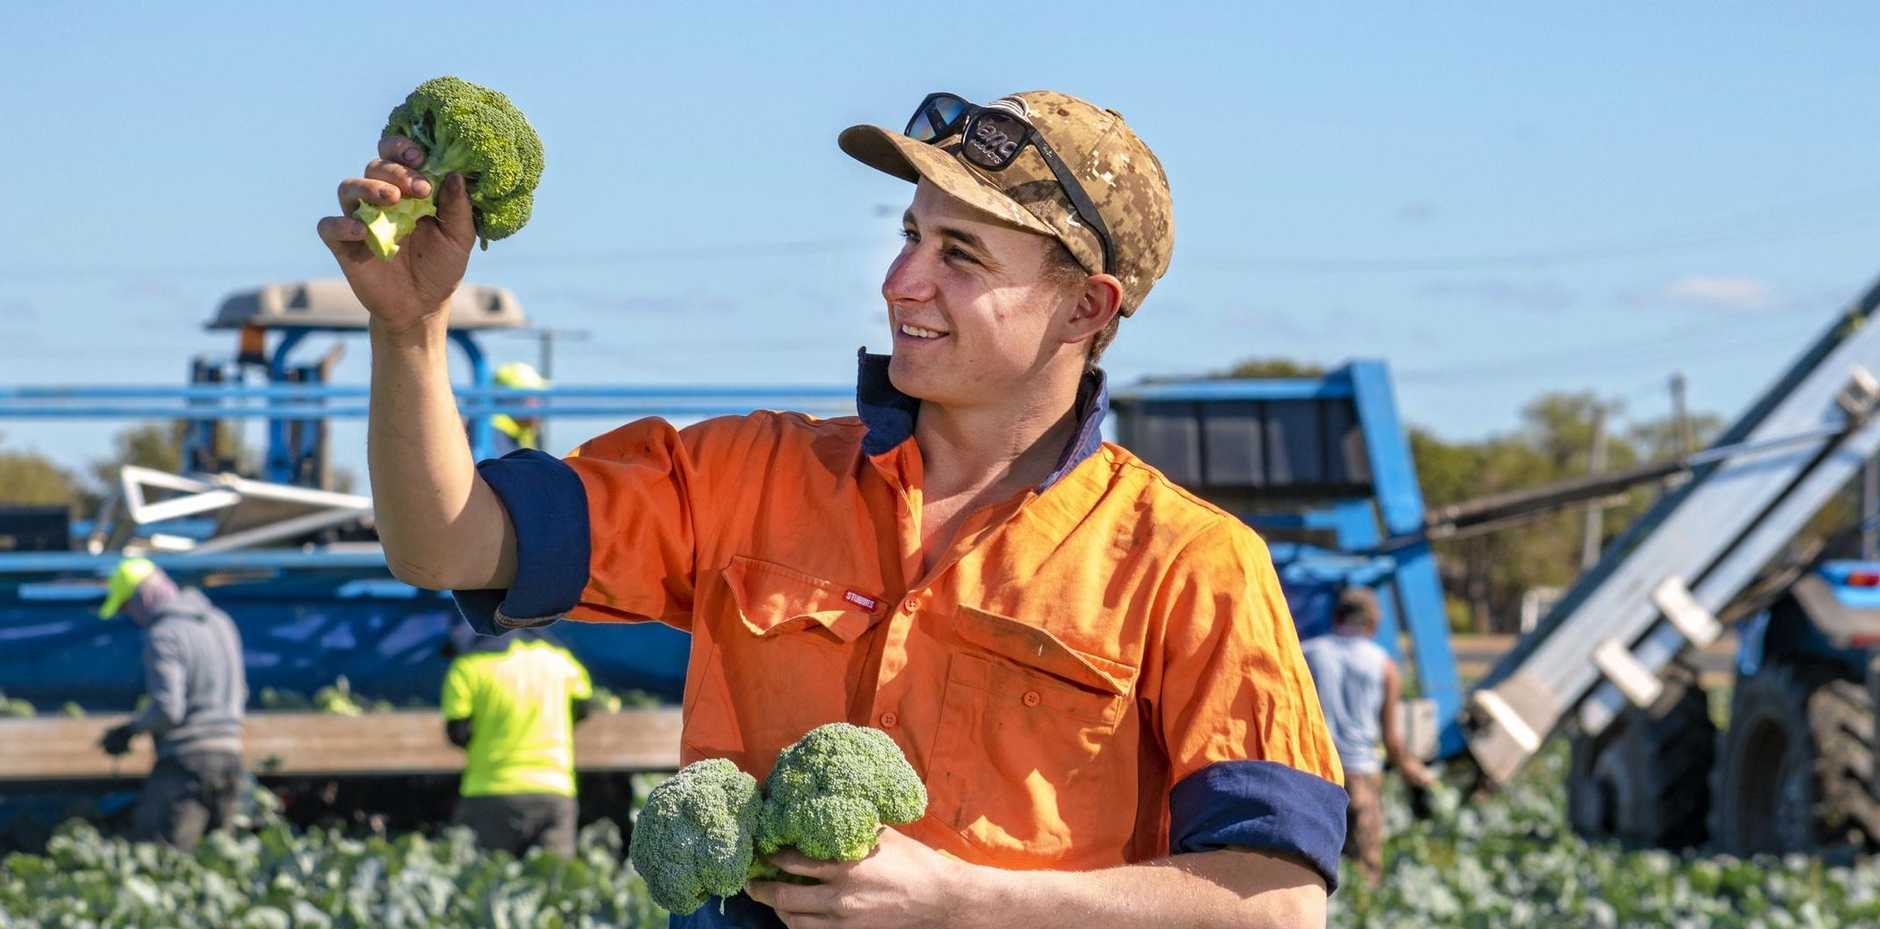 QUALITY: Forest Hill farmer Mitch Brimblecombe, Moira Farms, inspects some broccoli, while contract workers harvest in the background.